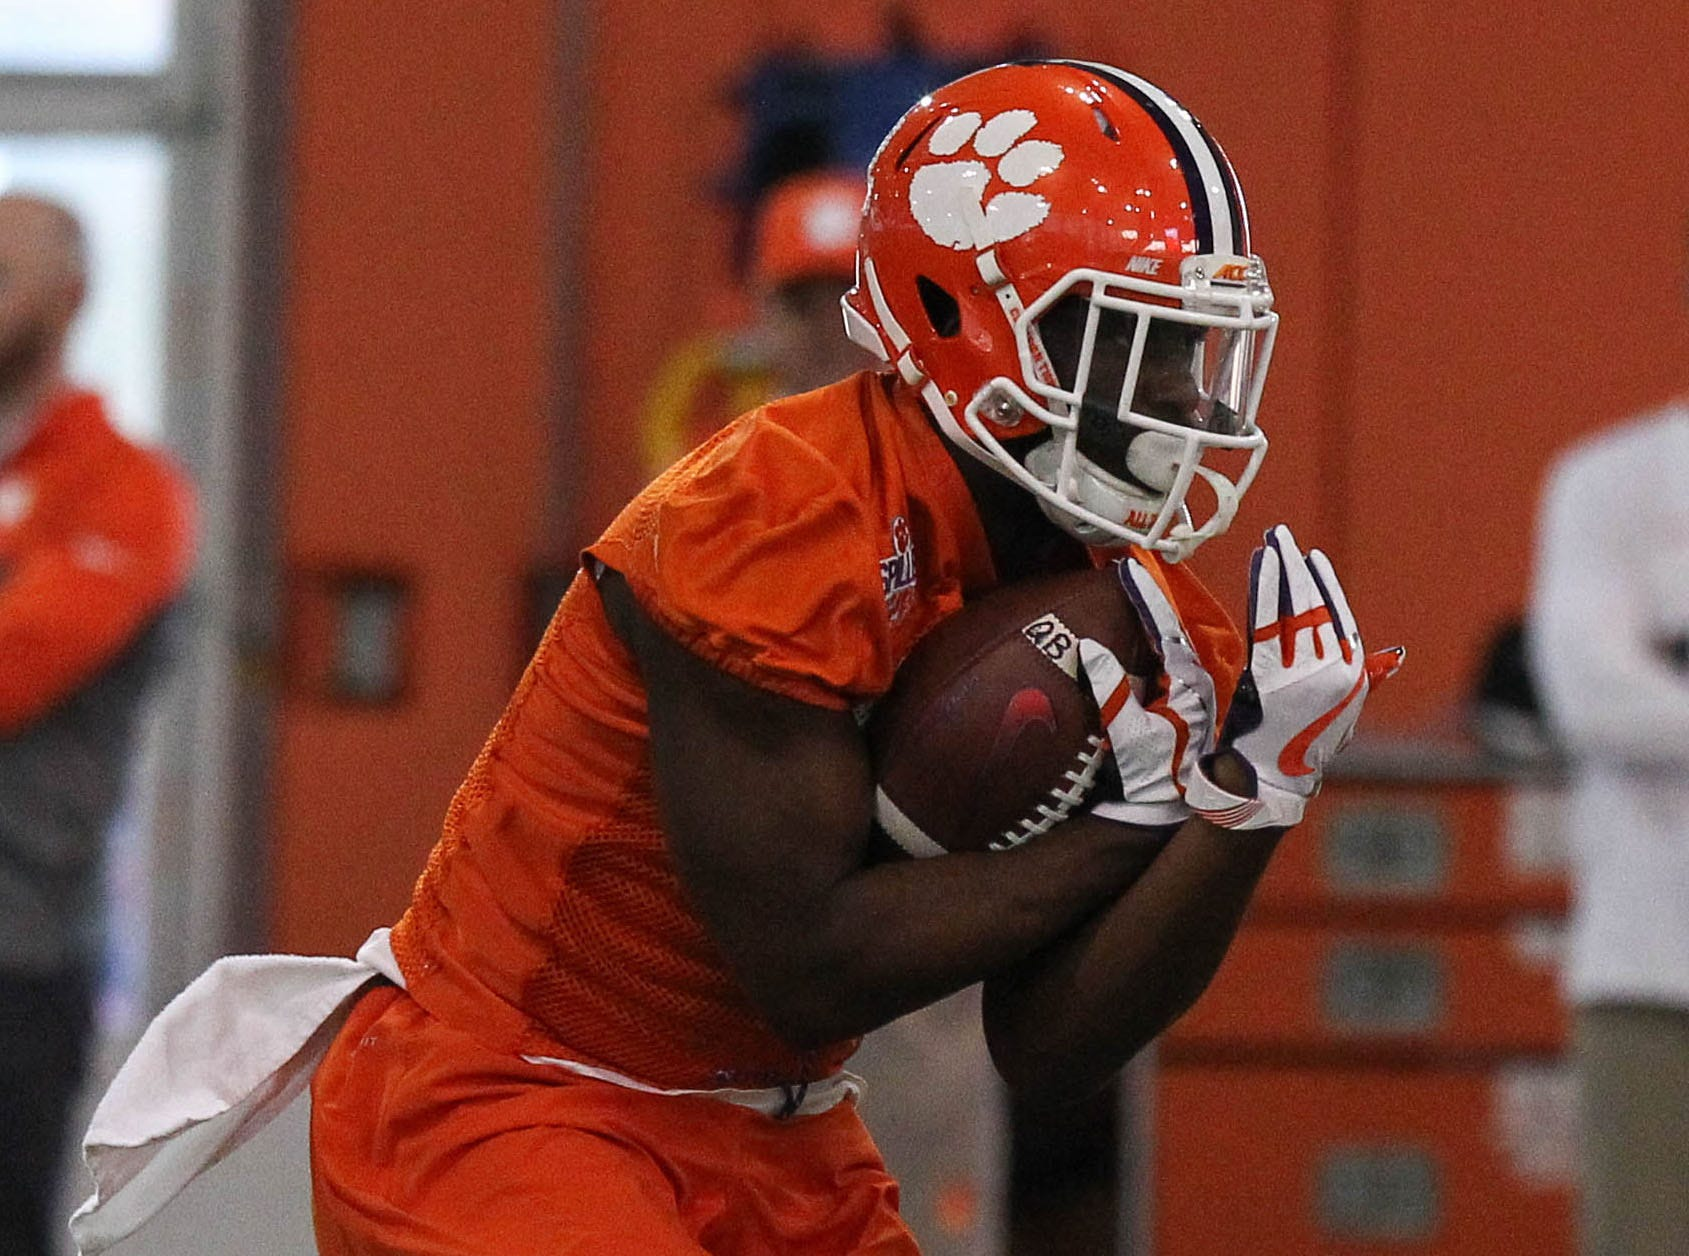 Clemson running back Tavien Feaster (28) at the first practice of the new season at the Allen Reeves Football Complex on Wednesday, Feb. 27, 2019.